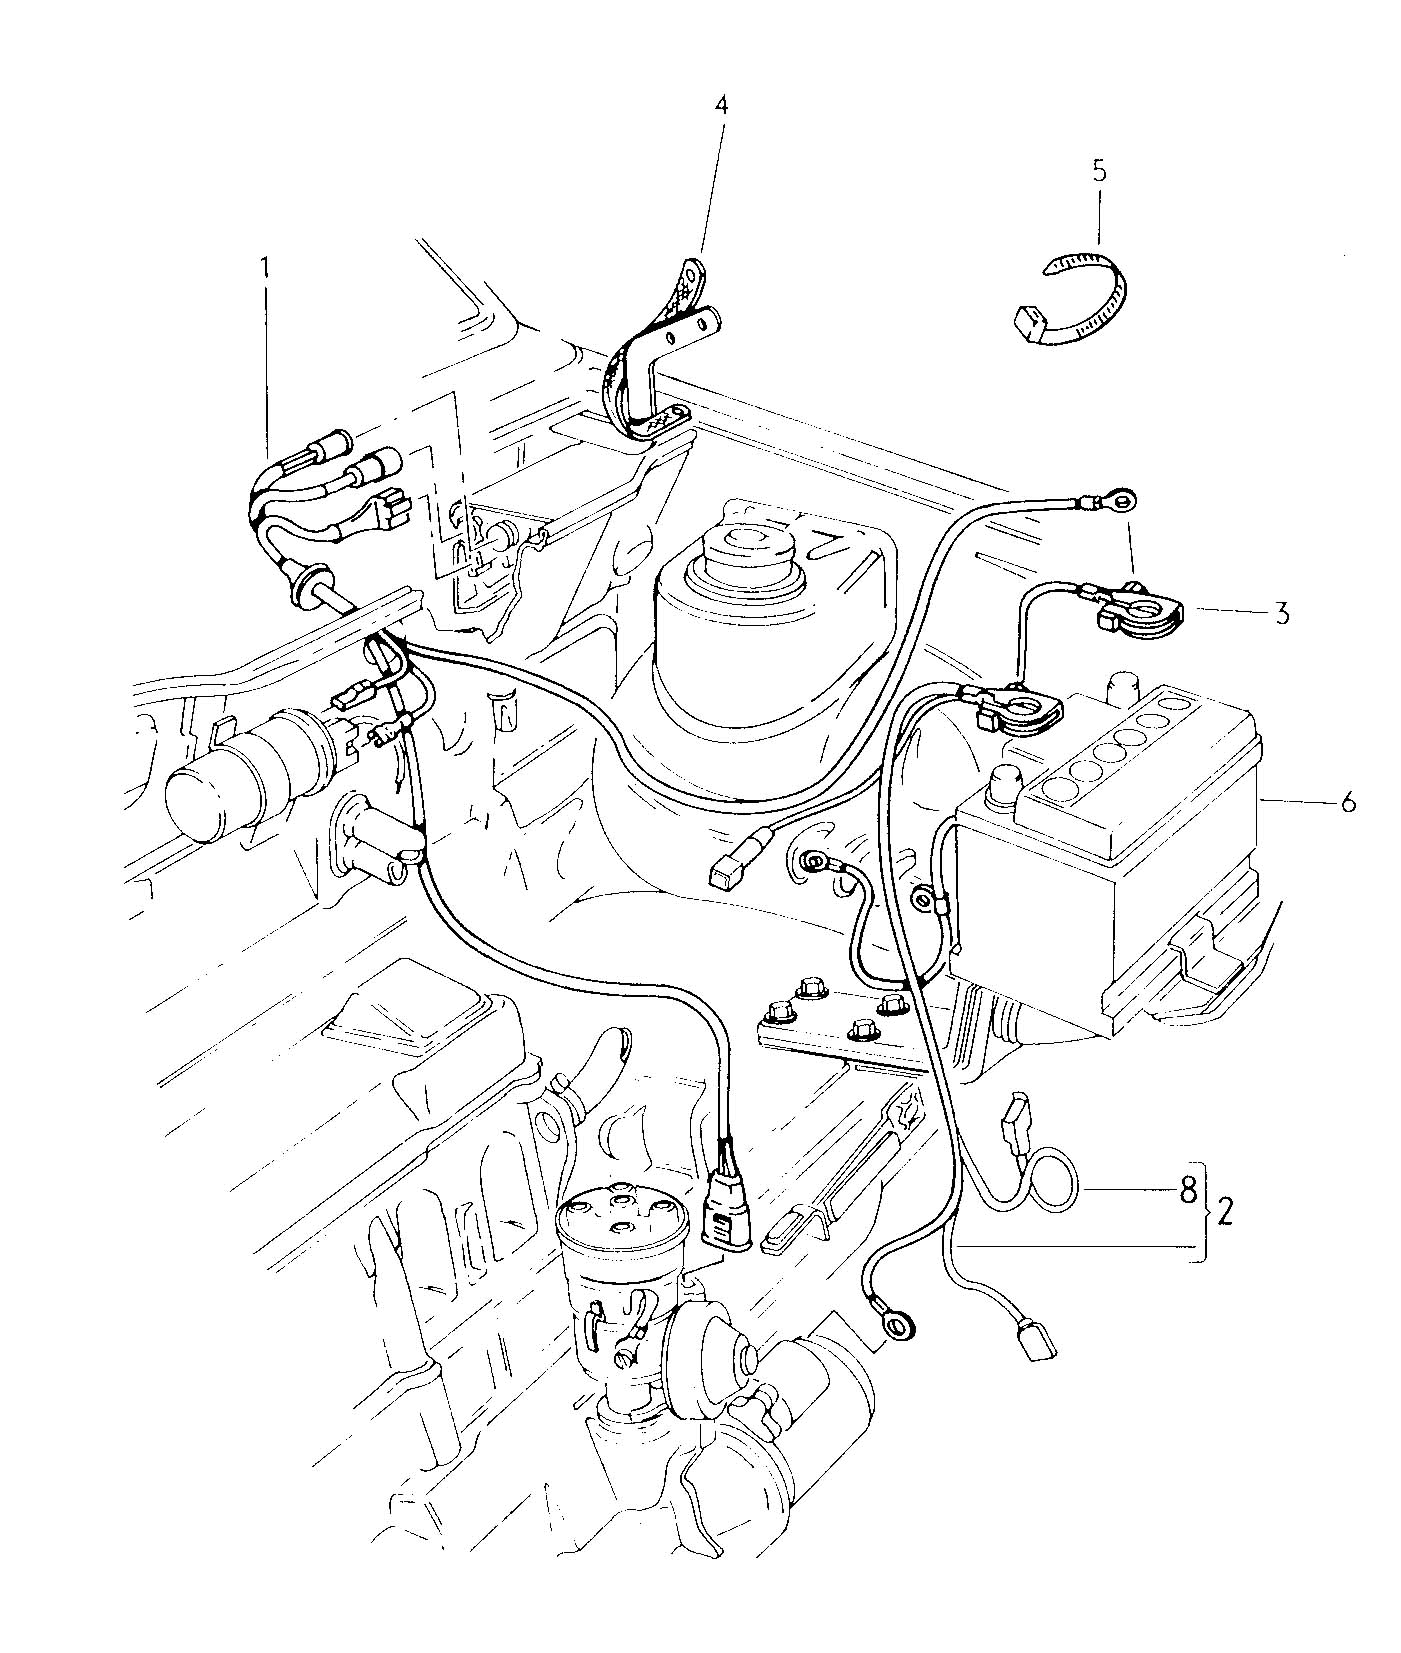 Volkswagen Rabbit Harness For Ignition Coil